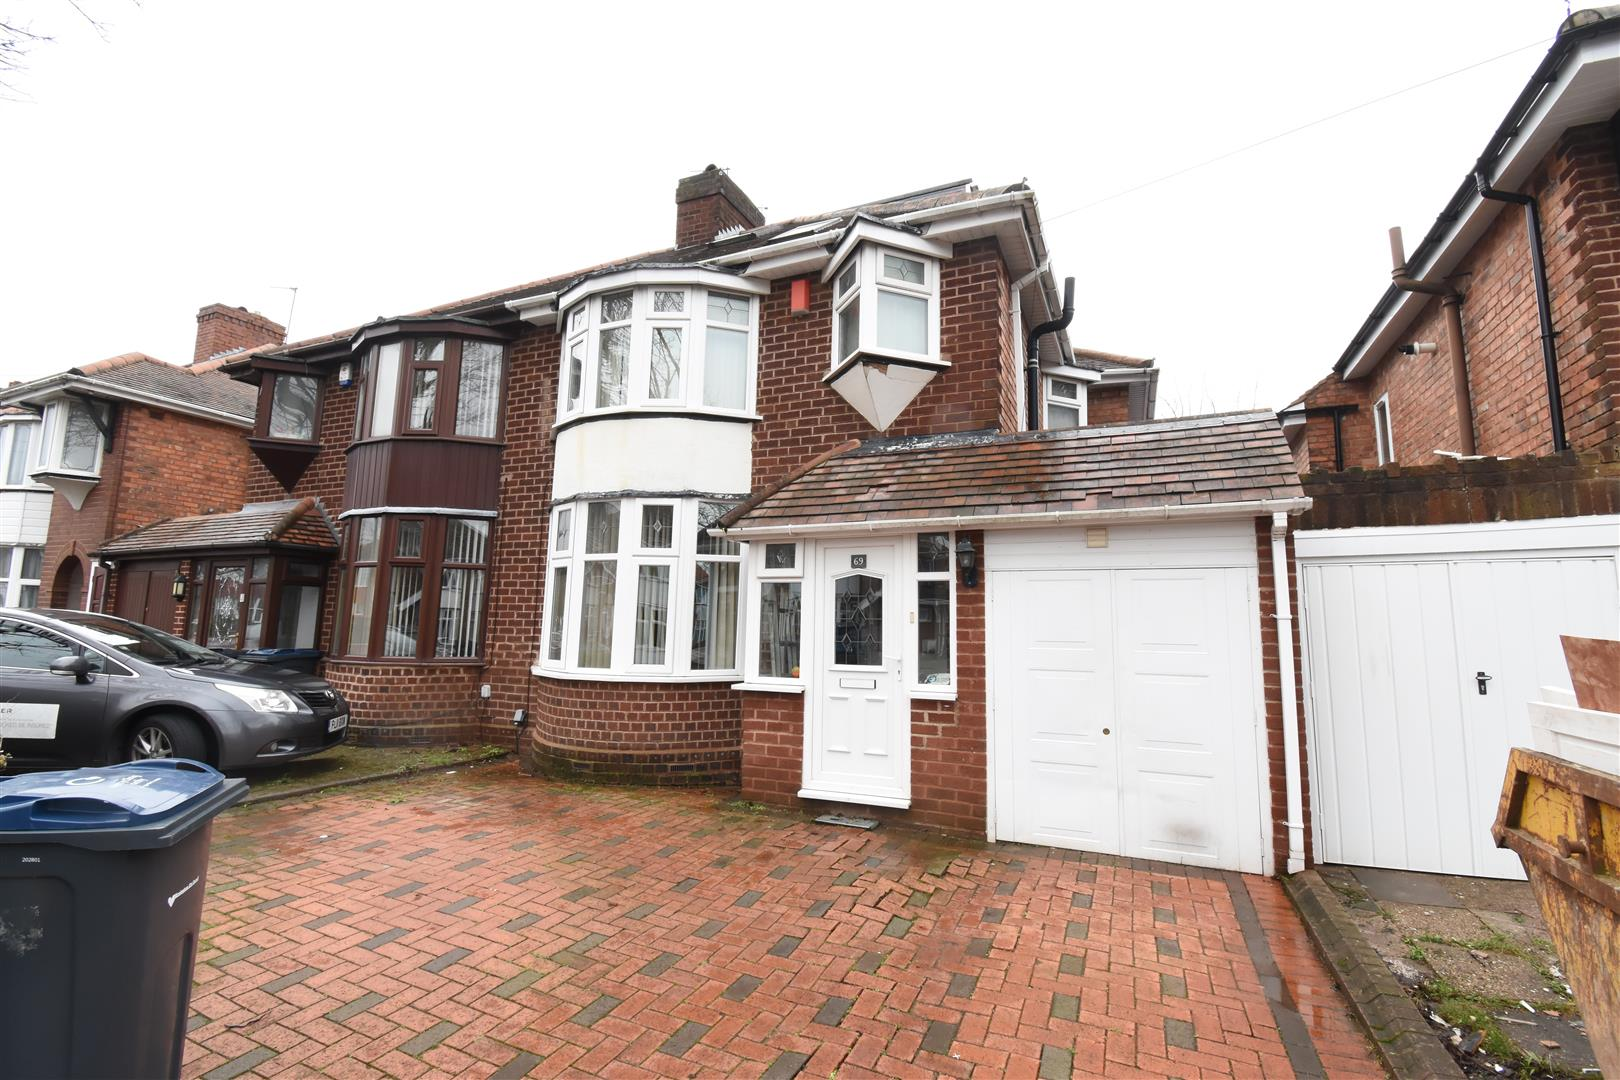 4 bed house for sale in Rymond Road, Hodge Hill, Birmingham, B34